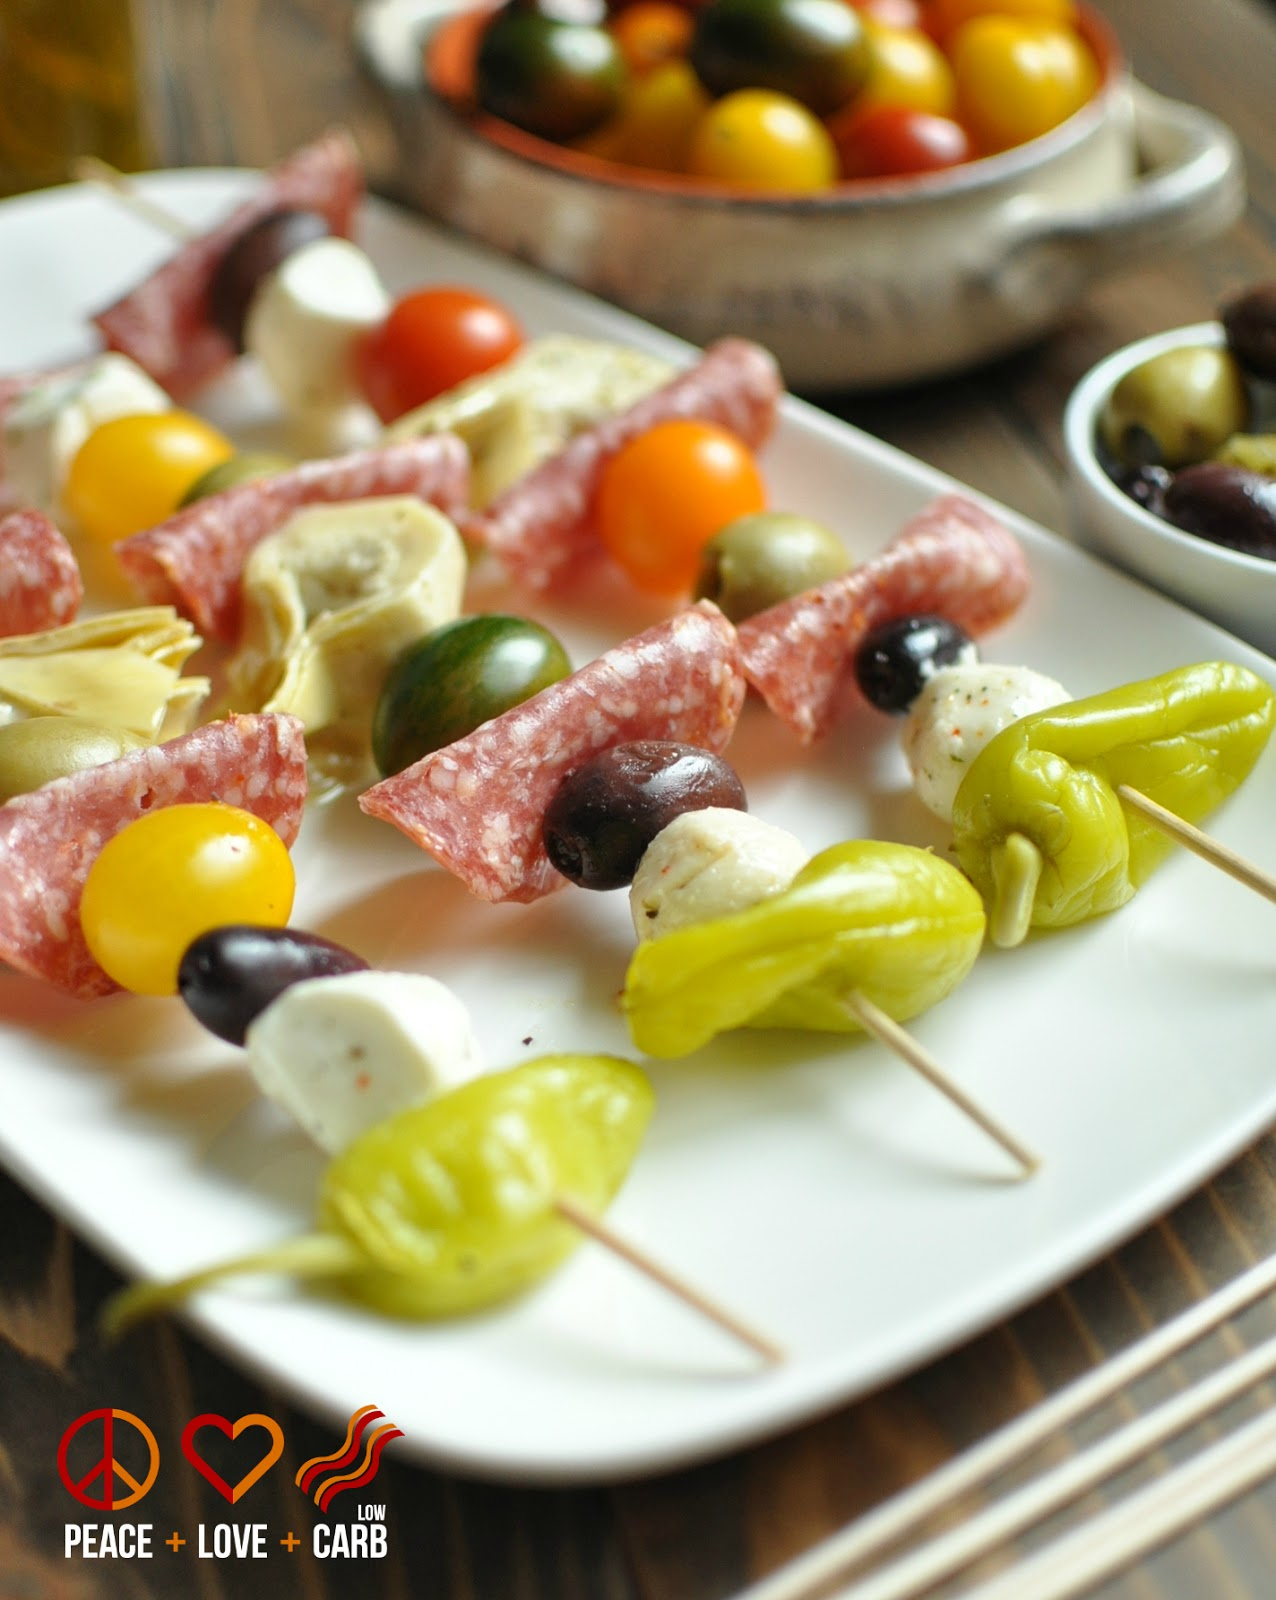 Antipasto Kabobs From Peace Love And Low Carb Shown Above Look Like An Appetizer That Will Disappear Quickly